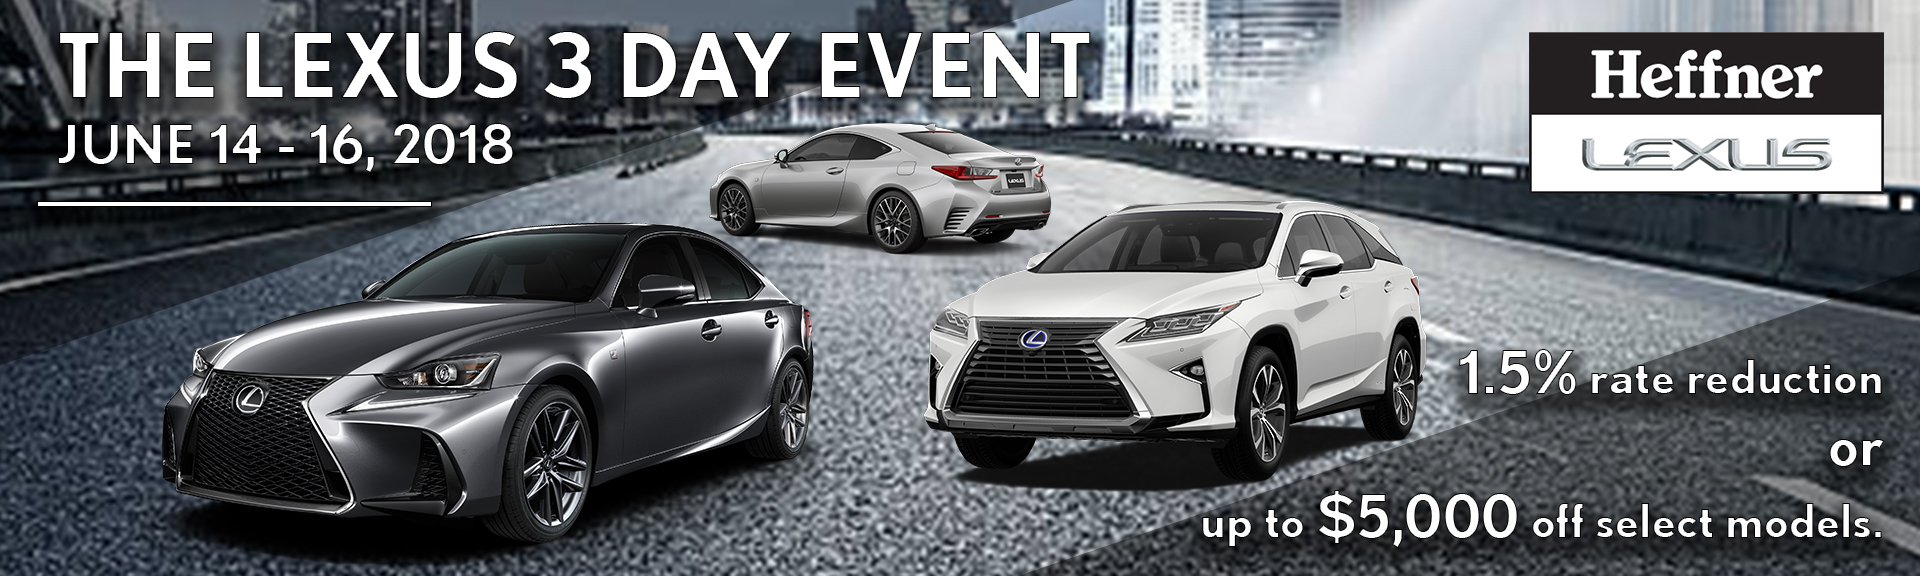 Lexus 3 Day Event June14-16